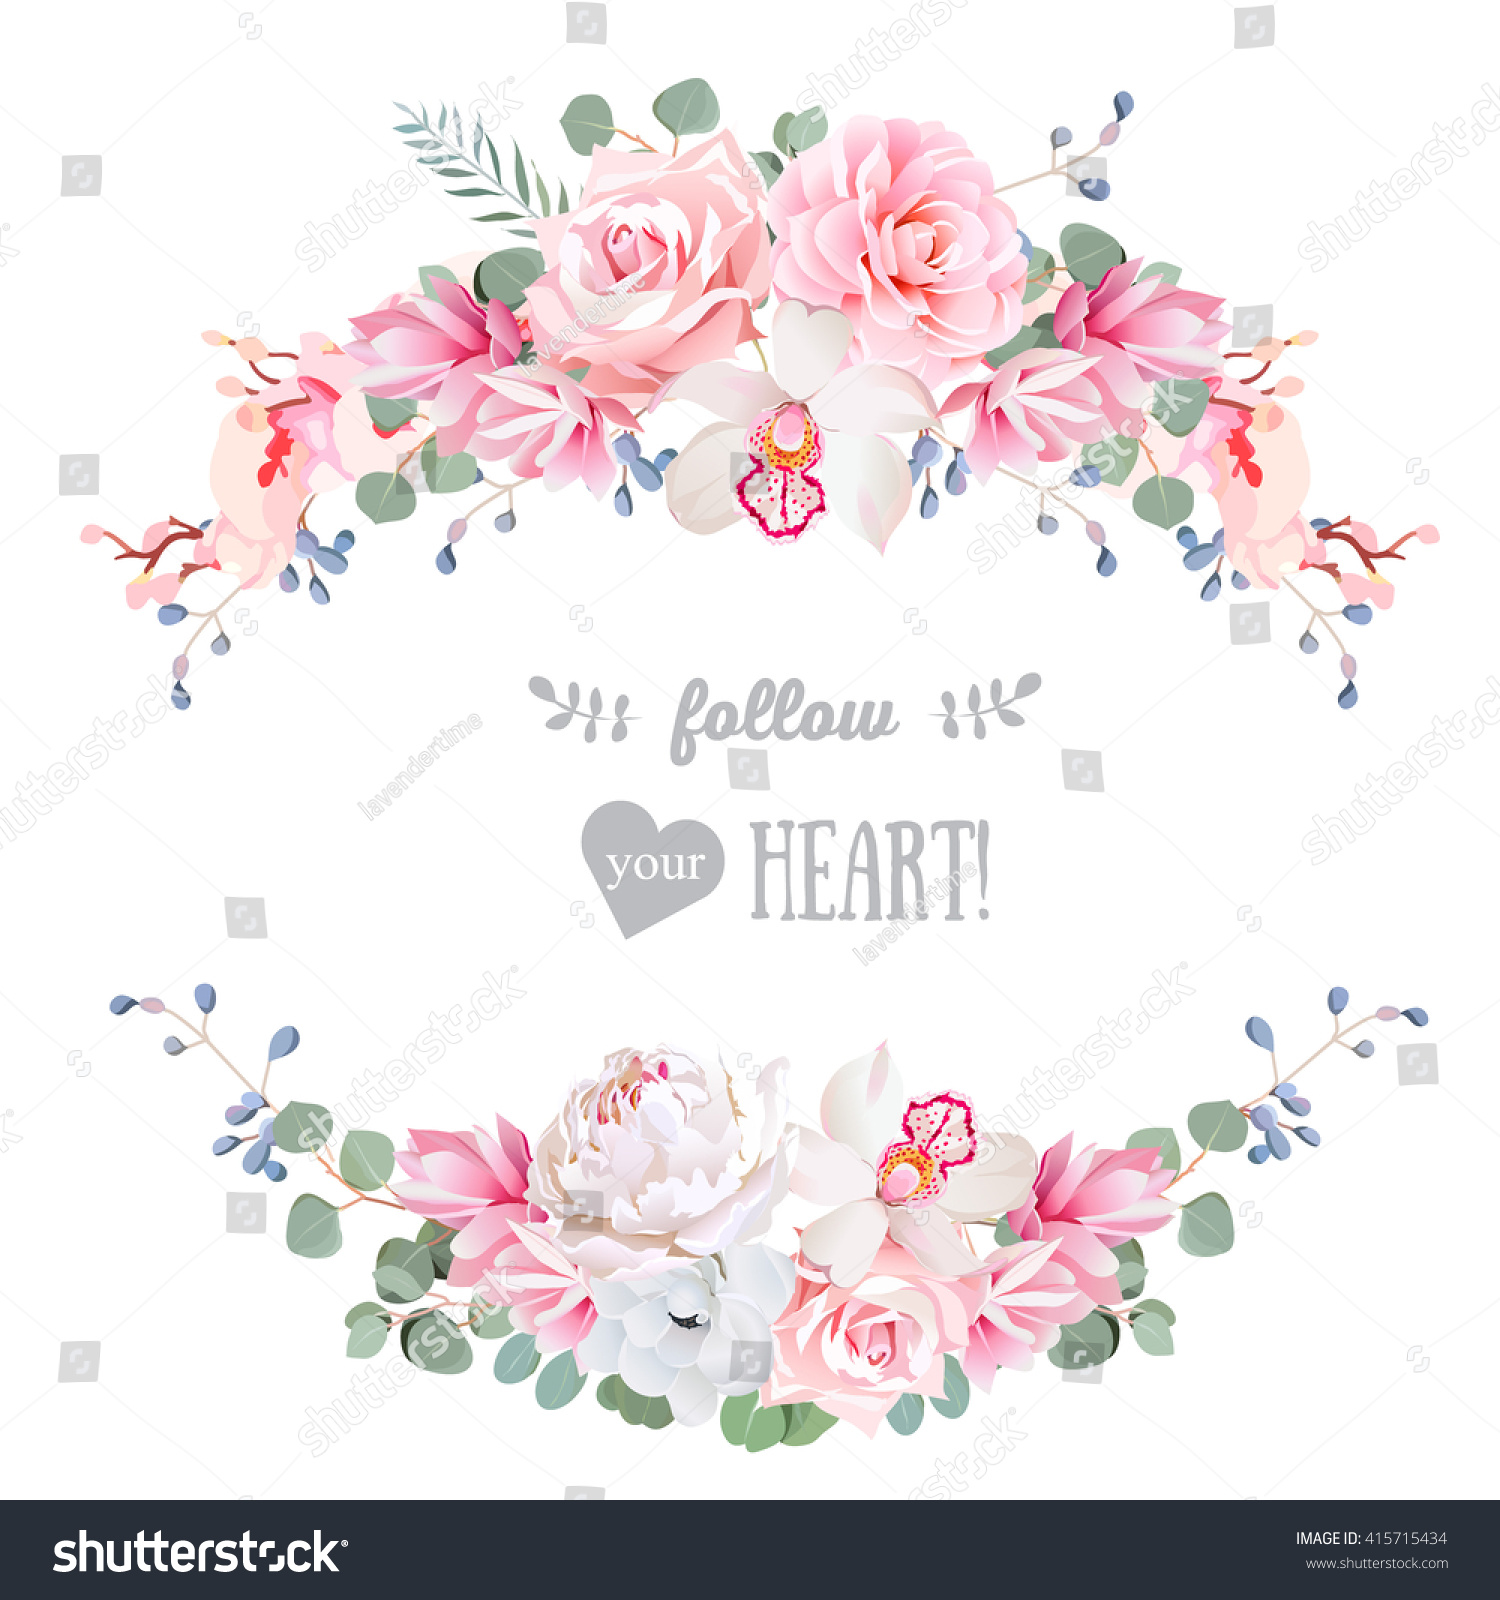 Cute Wedding Floral Vector Design Frame Stock Vector